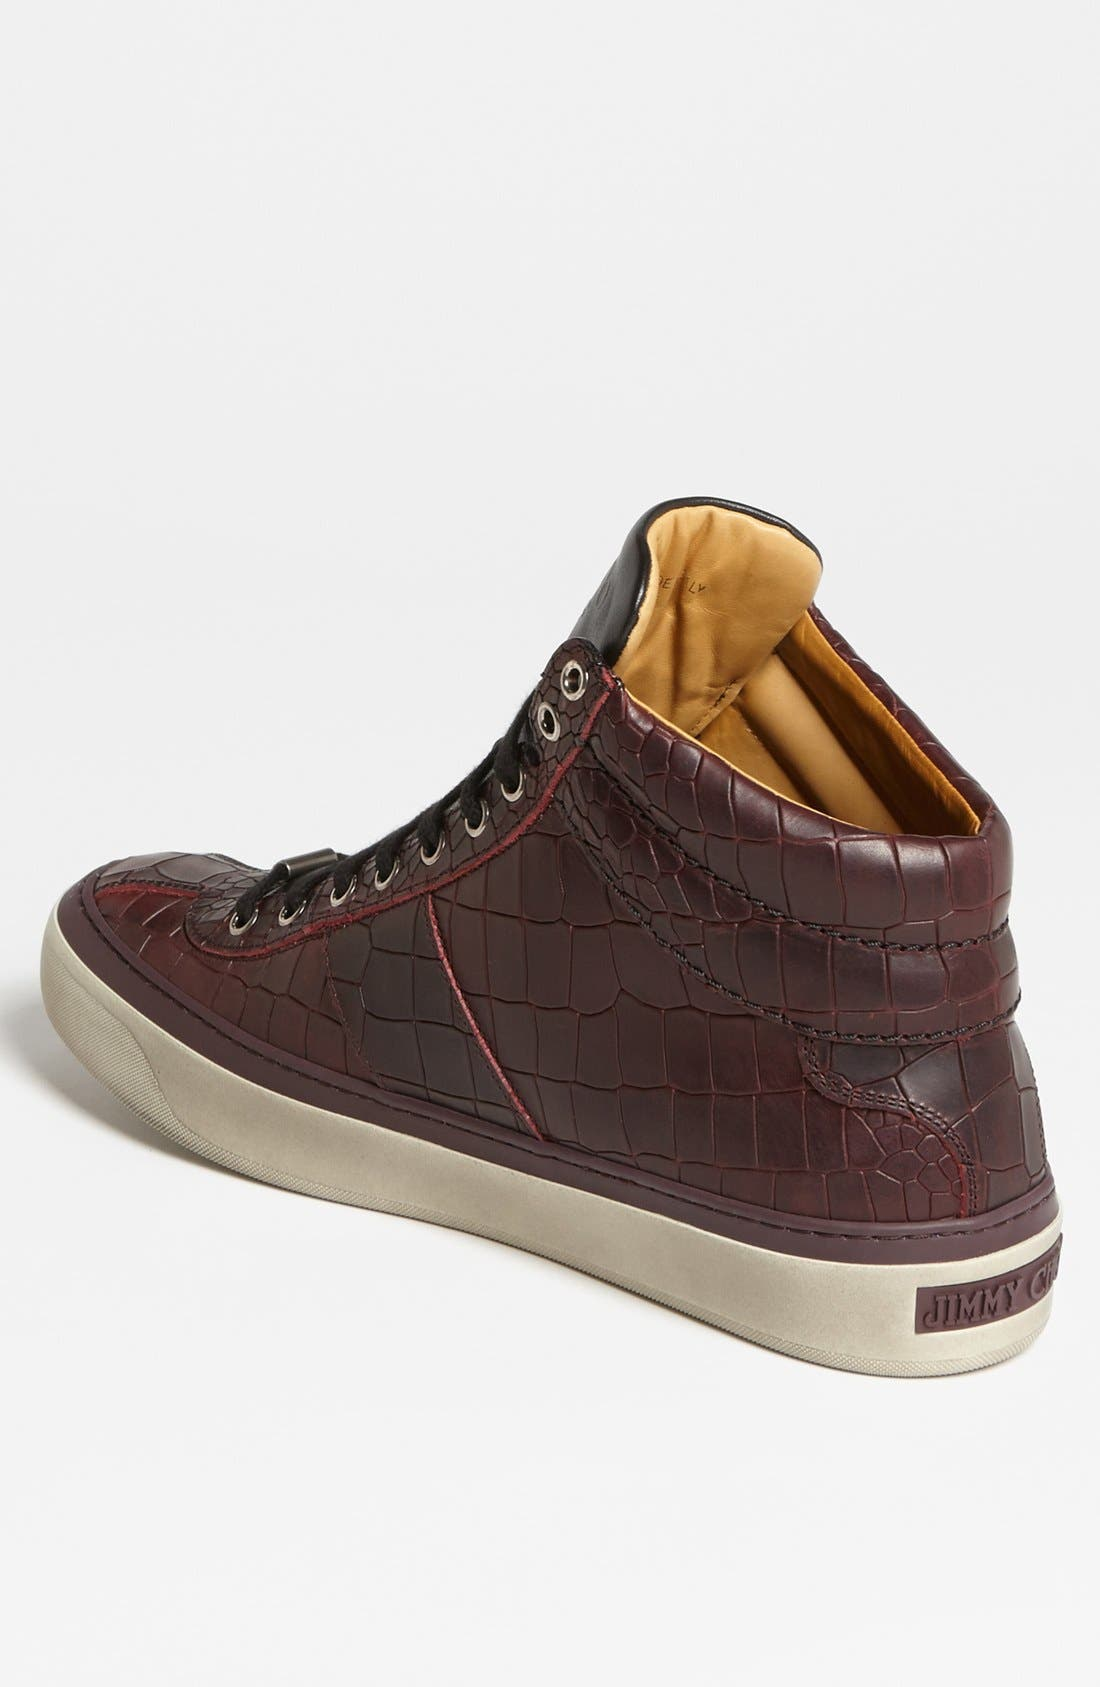 Belgravia High Top Sneaker,                             Alternate thumbnail 11, color,